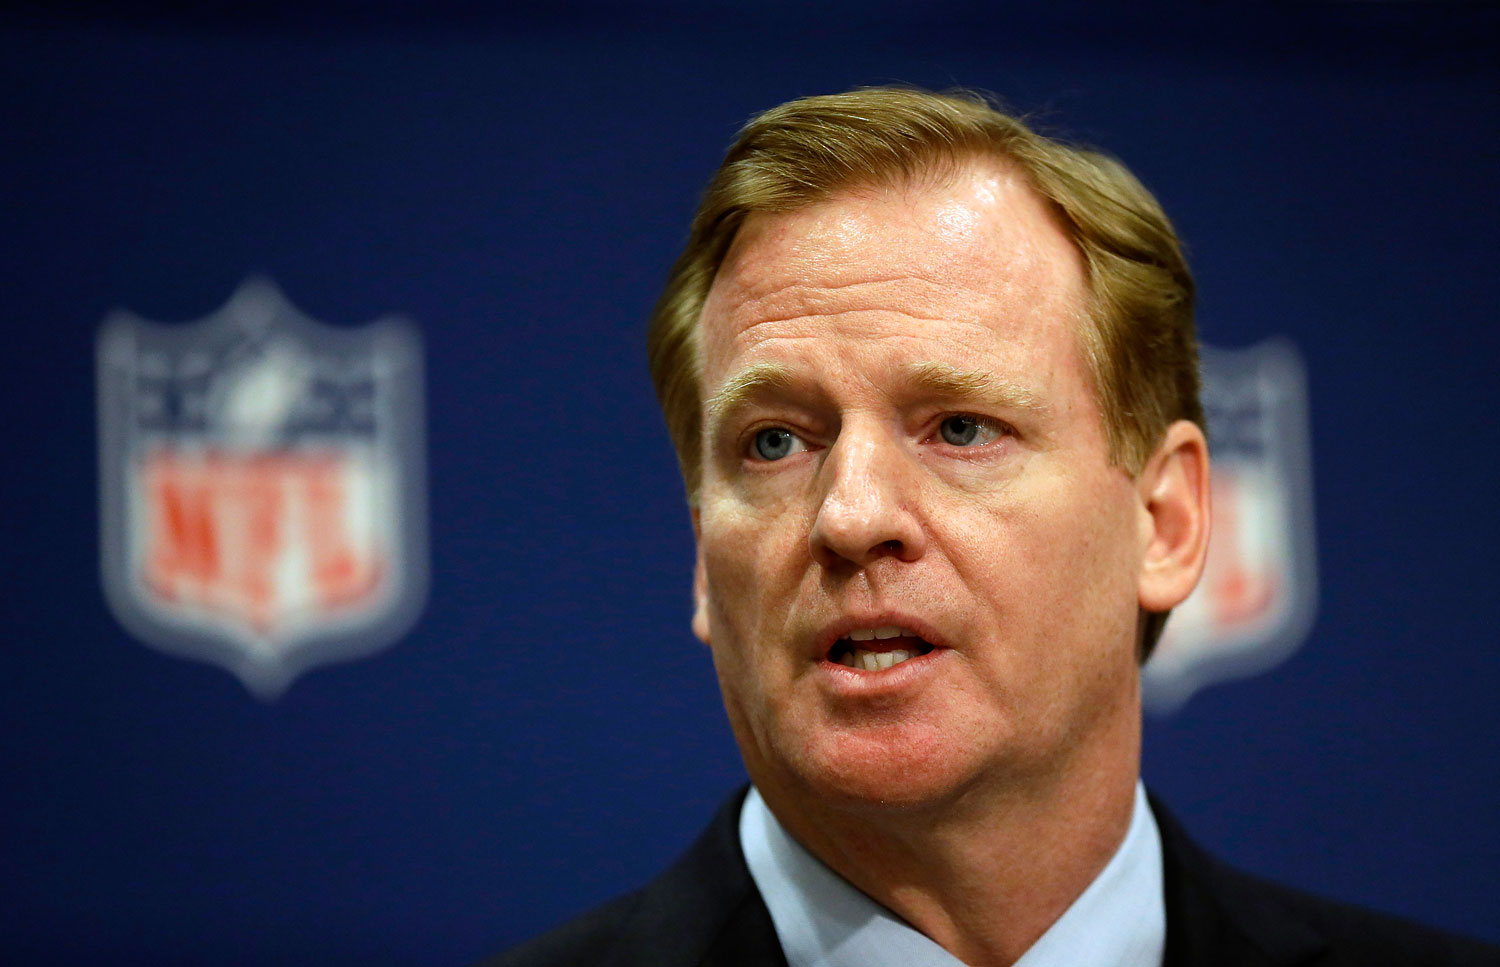 NFL Commissioner Roger Goodell speaks at a press conference at the NFL's spring meeting in Atlanta on May 20, 2014.